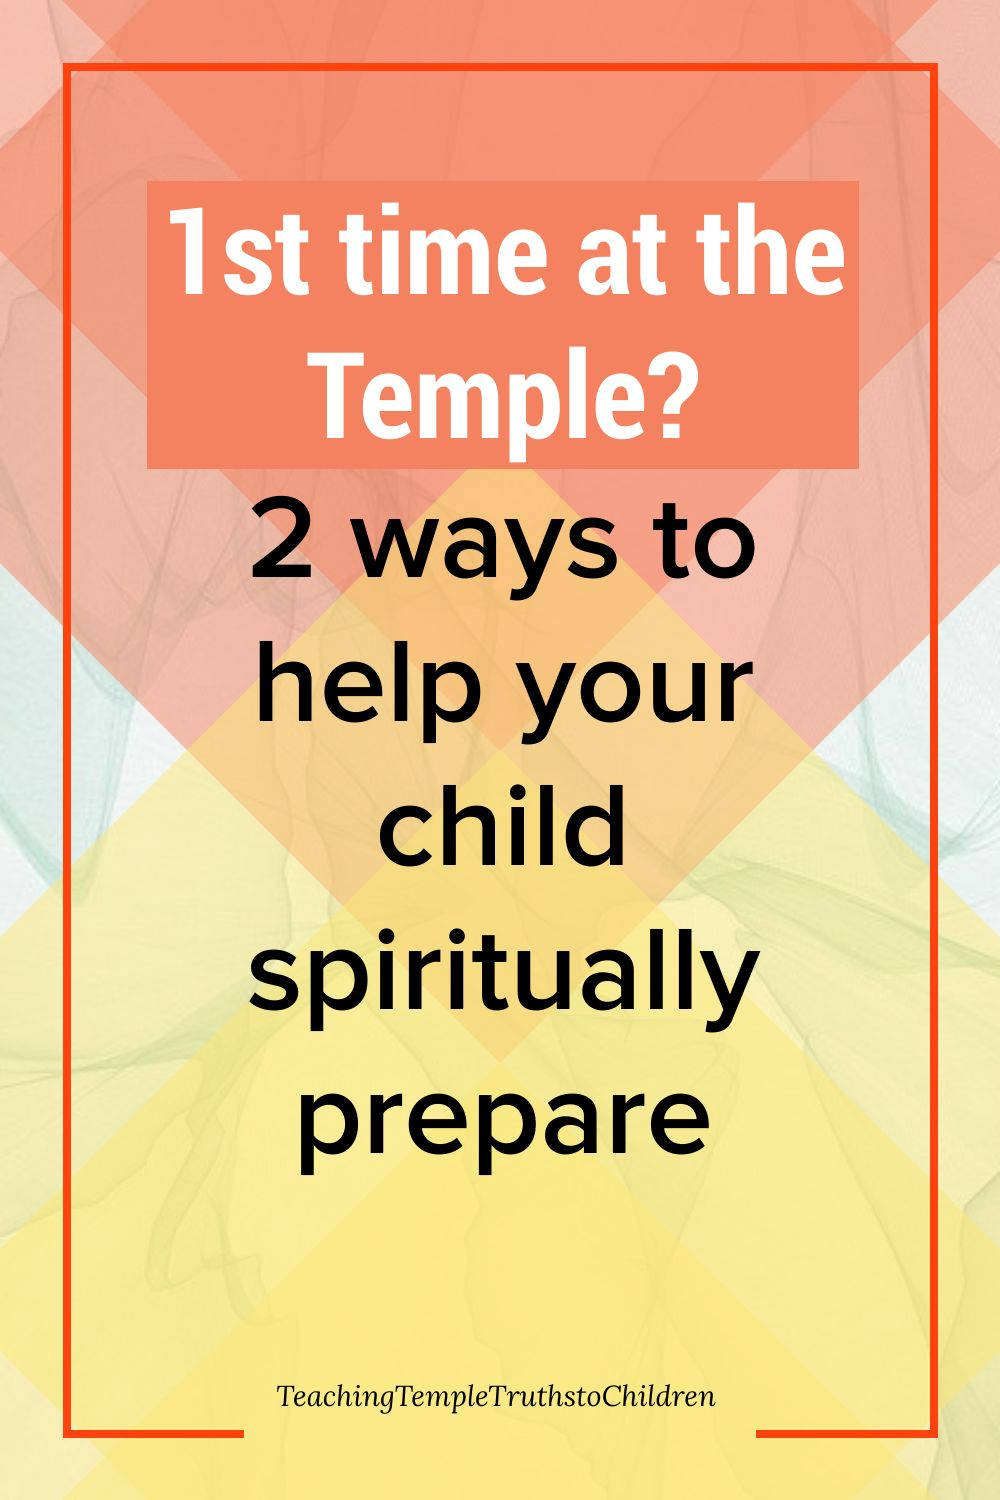 1st time at the Temple? 2 ways to can help your child be spiritually